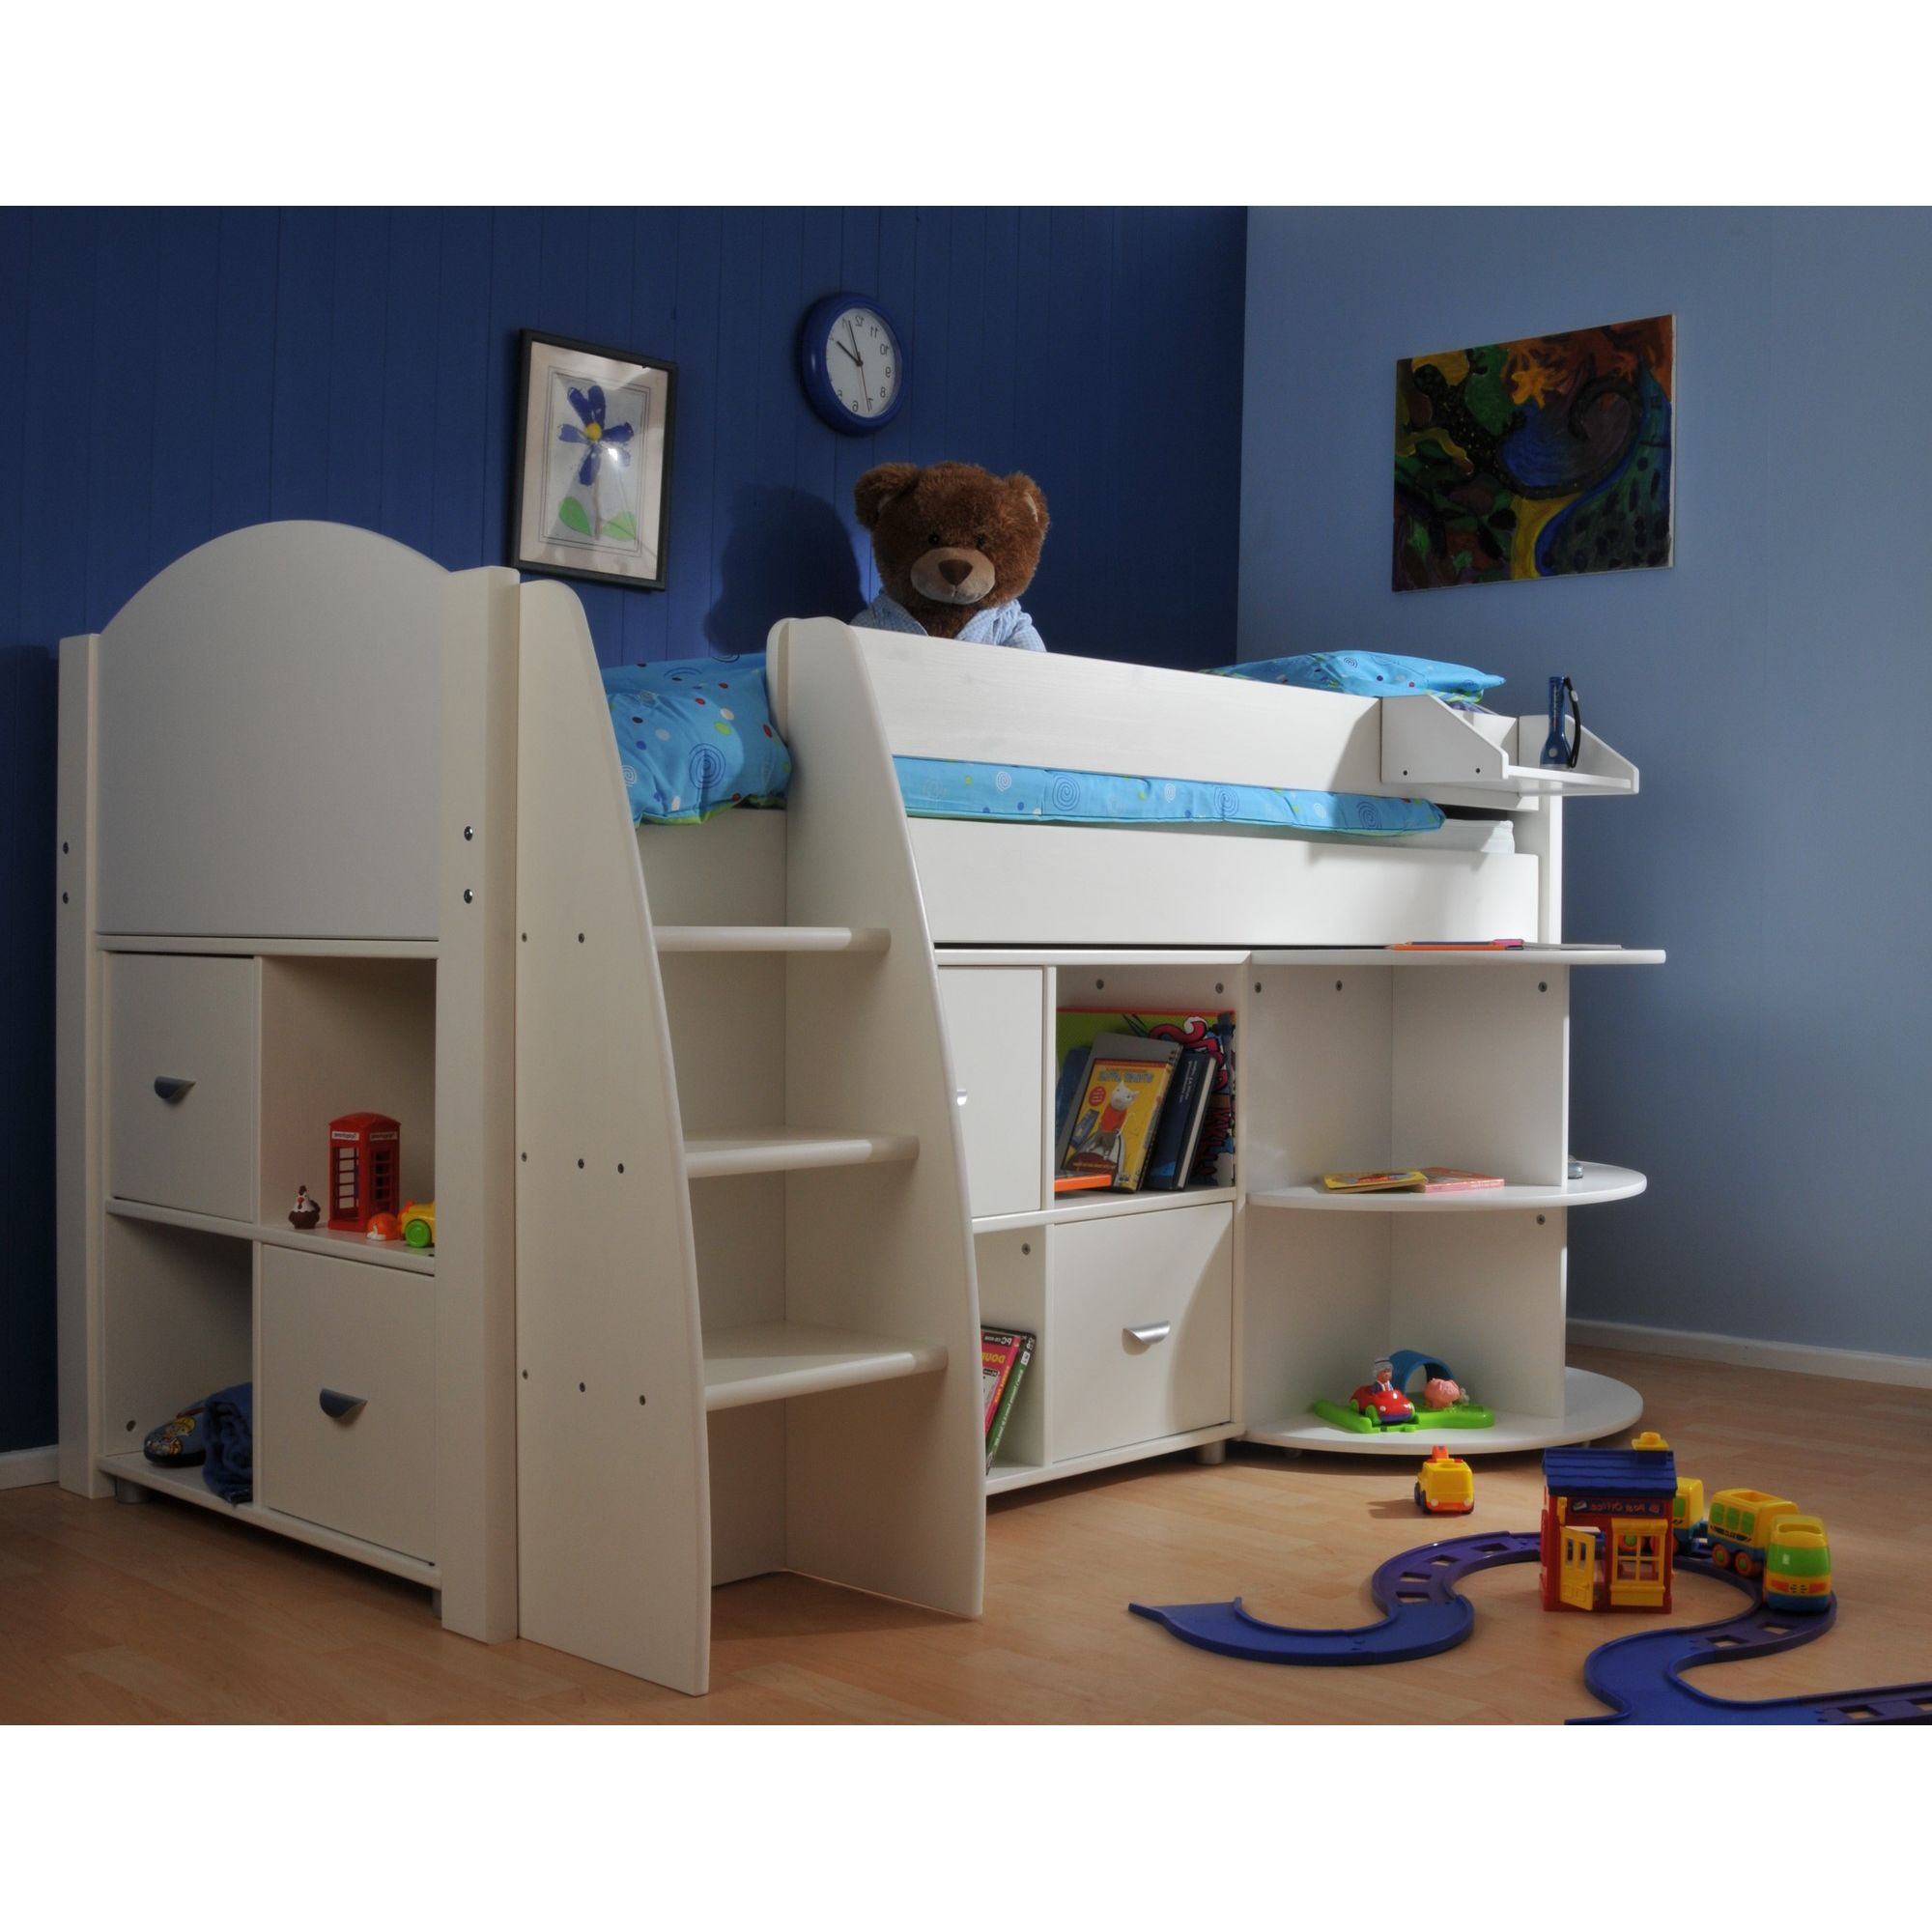 Stompa Rondo Mid Sleeper Bed with 8 Cube Unit and Extending Desk - Blue - White at Tesco Direct